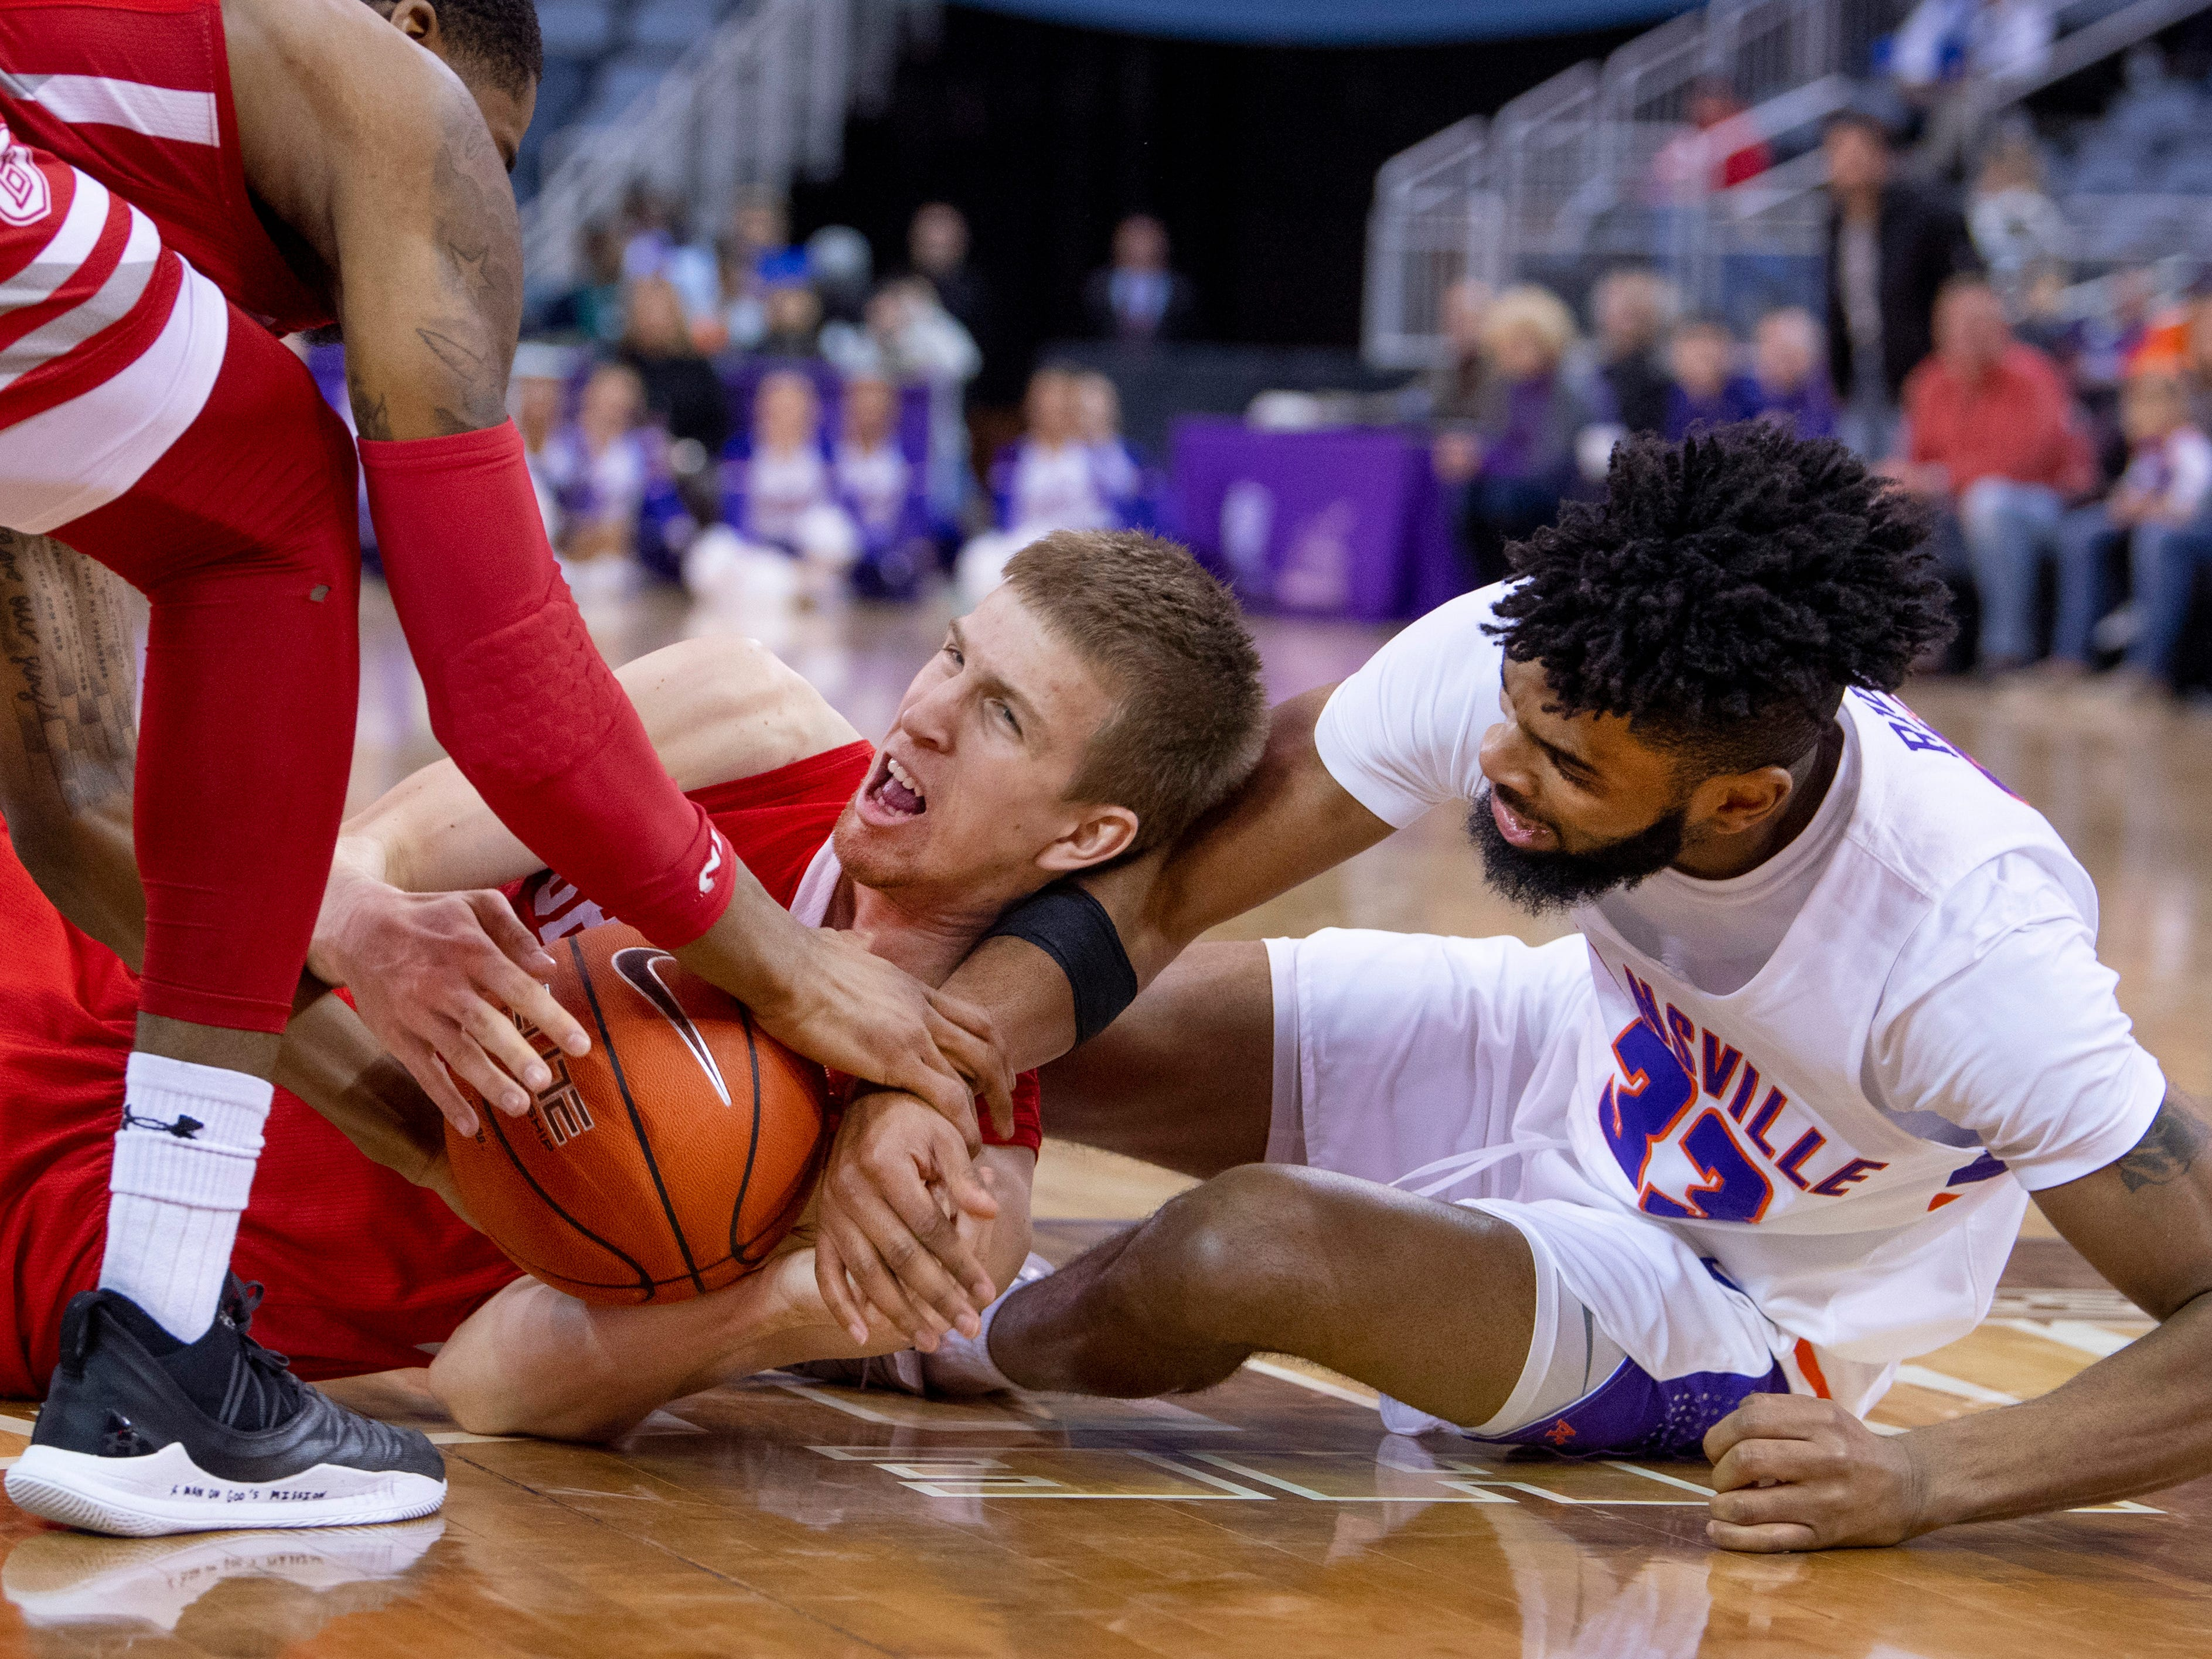 Bradley's Nate Kennell (25) comes up with the ball ahead of Evansville's K.J. Riley (33) during their game at the Ford Center Wednesday night.